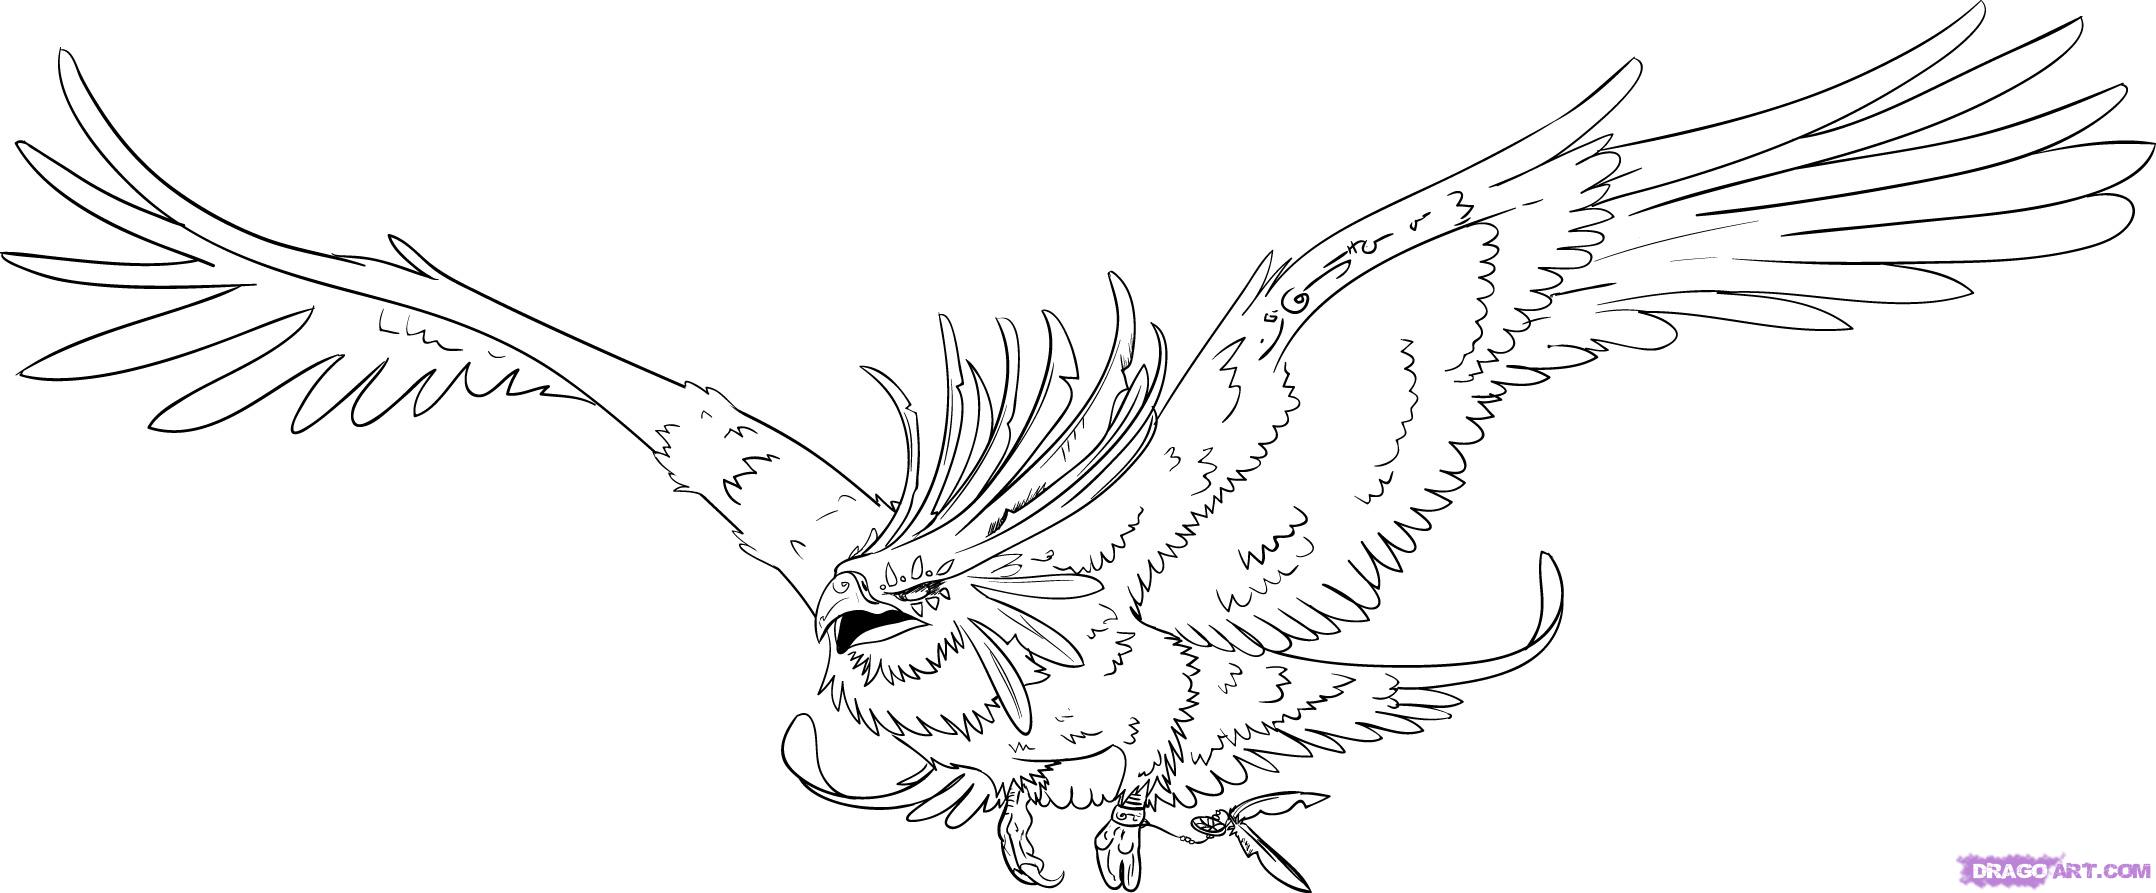 phoenix coloring pages robin39s great coloring pages phoenix religious significance coloring pages phoenix